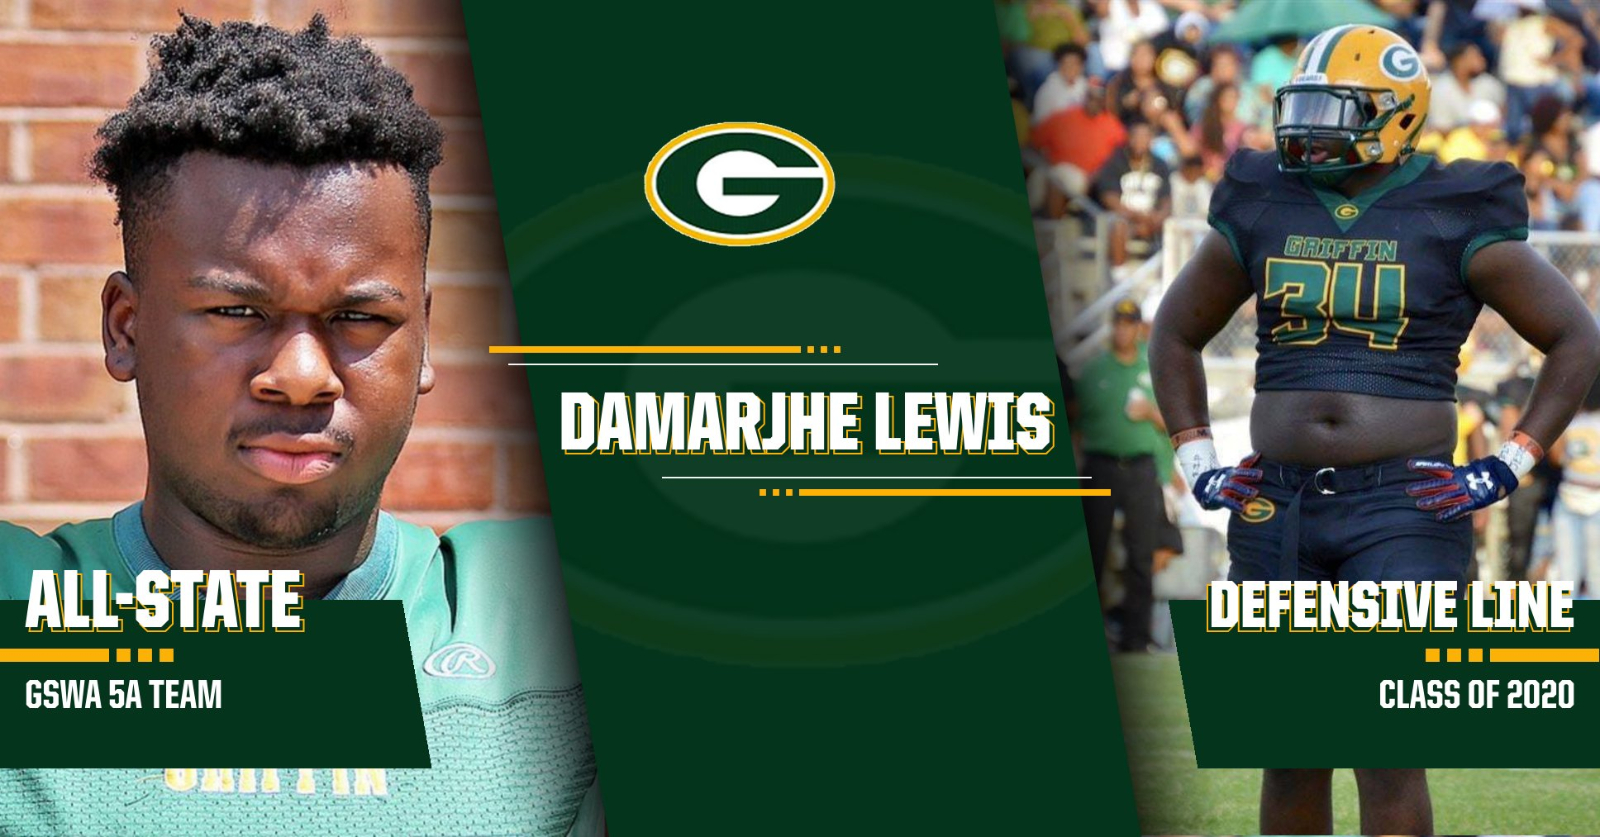 GSWA Honors Damarjhe Lewis